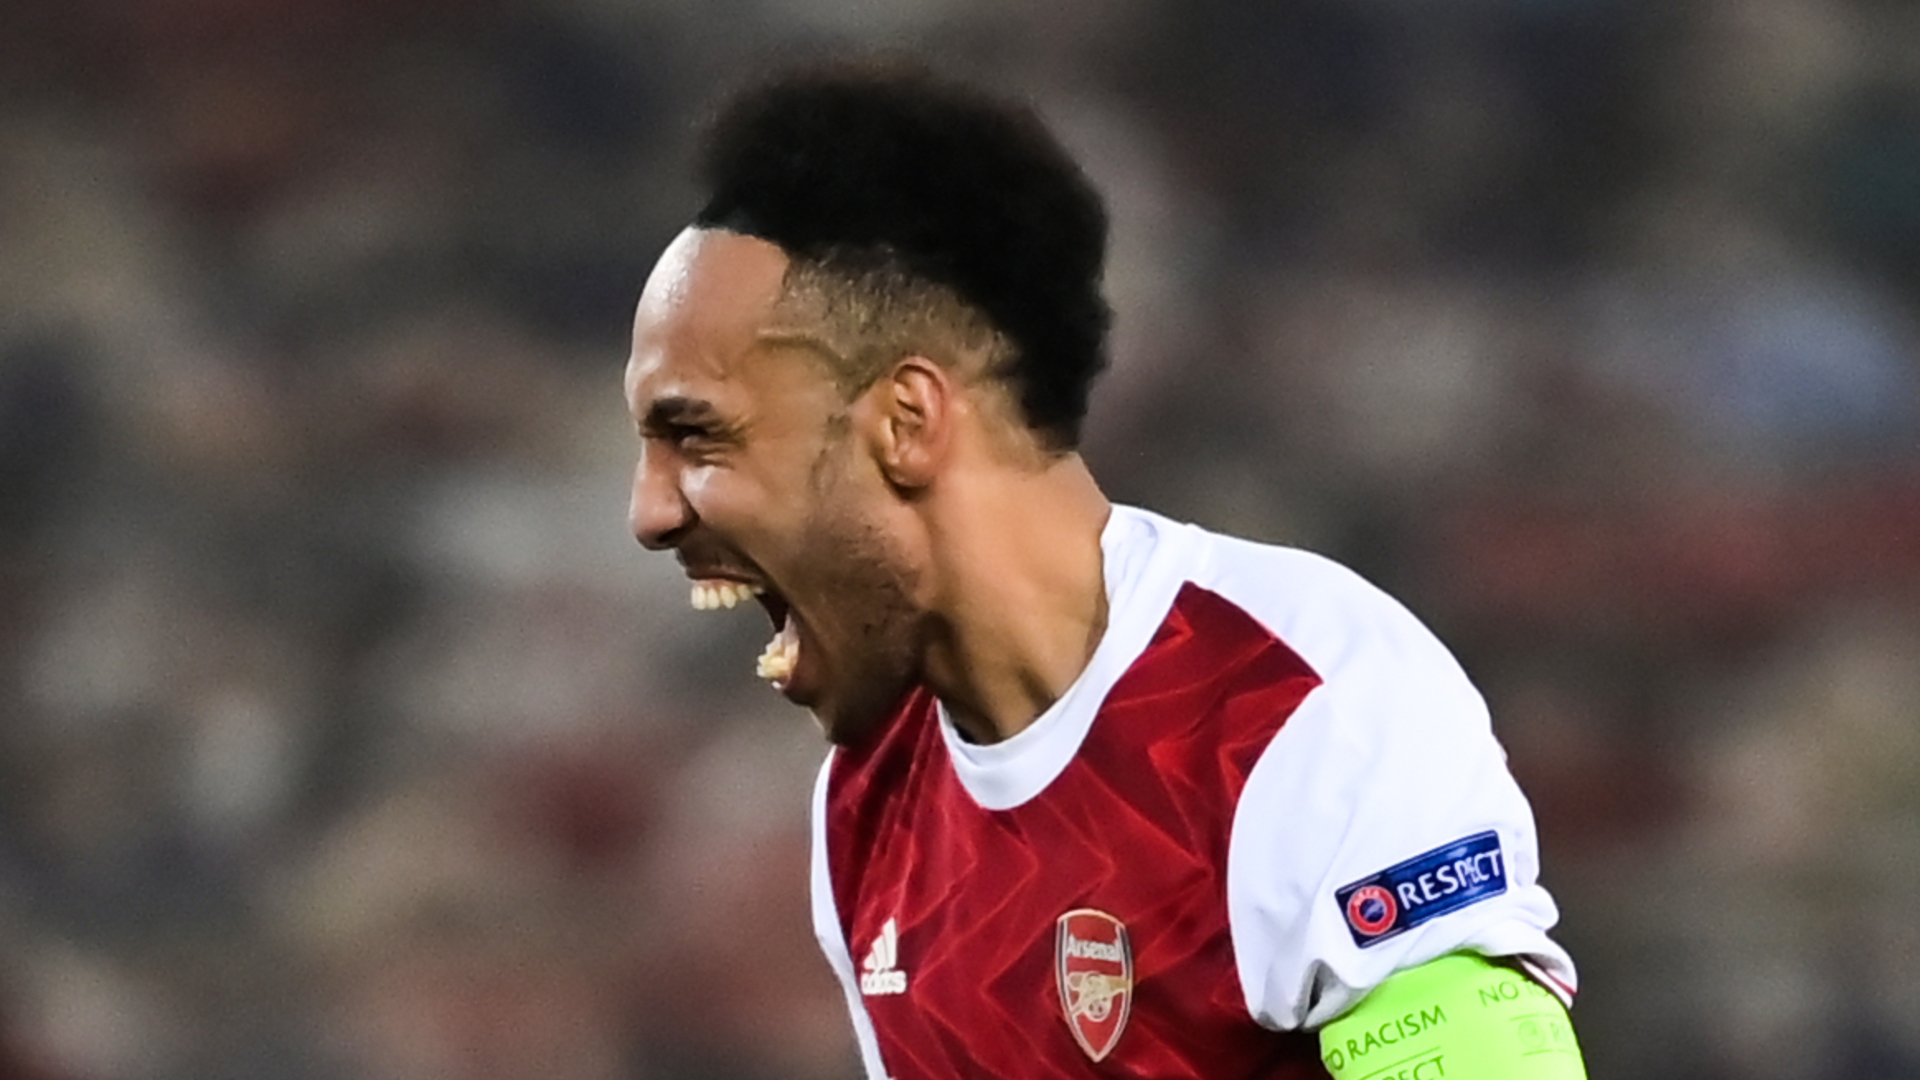 Get upset, get angry, work harder: Arteta's message to Arsenal as Auba points the way forward